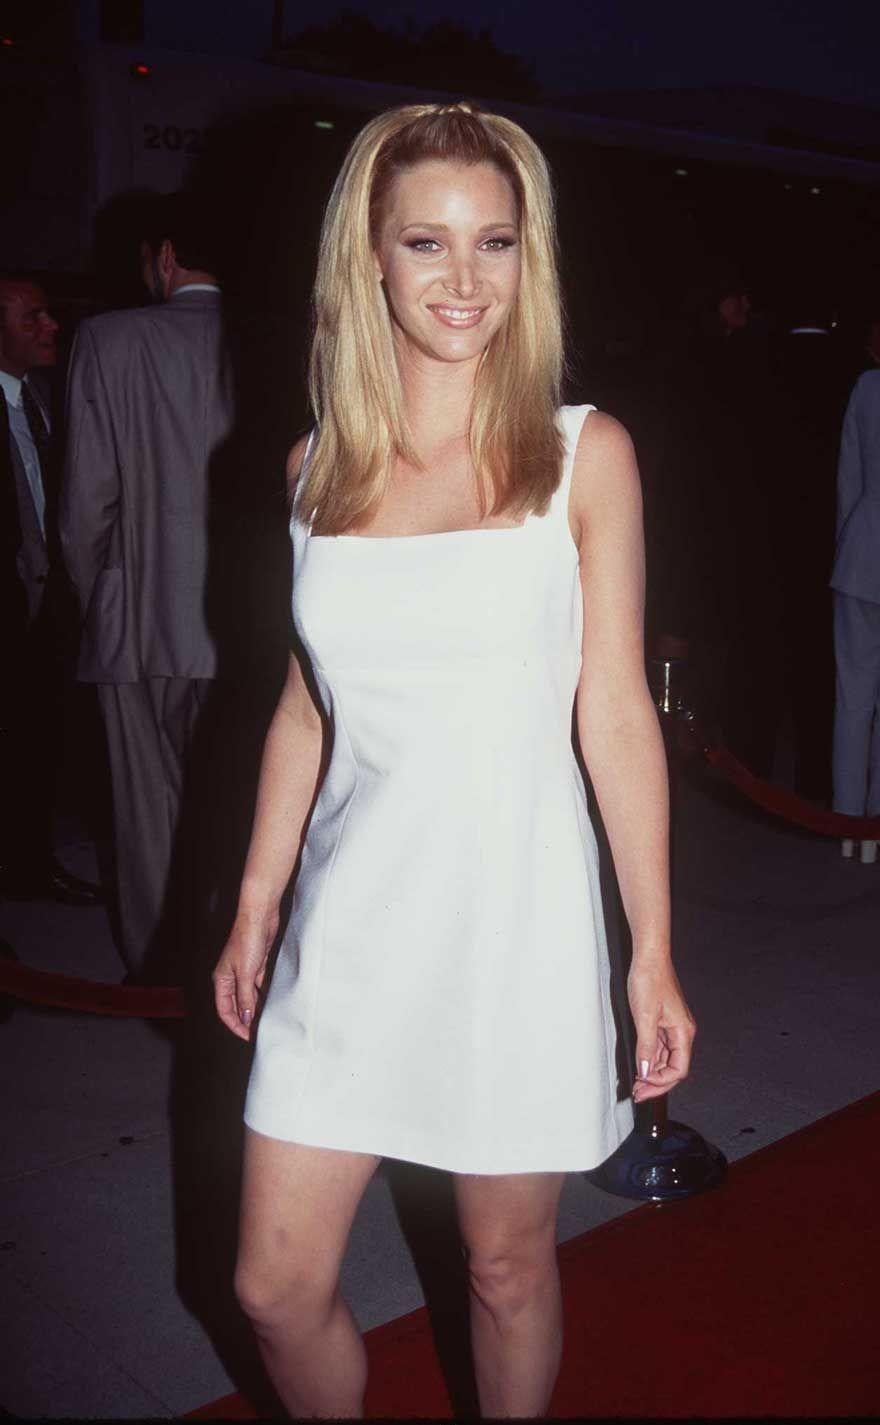 <p>Lisa Kudrow looks like a total bombshell from her hair to the white dress seen at the HBO premiere of <em>Norma Jean & Marilyn</em> in 1996. </p>